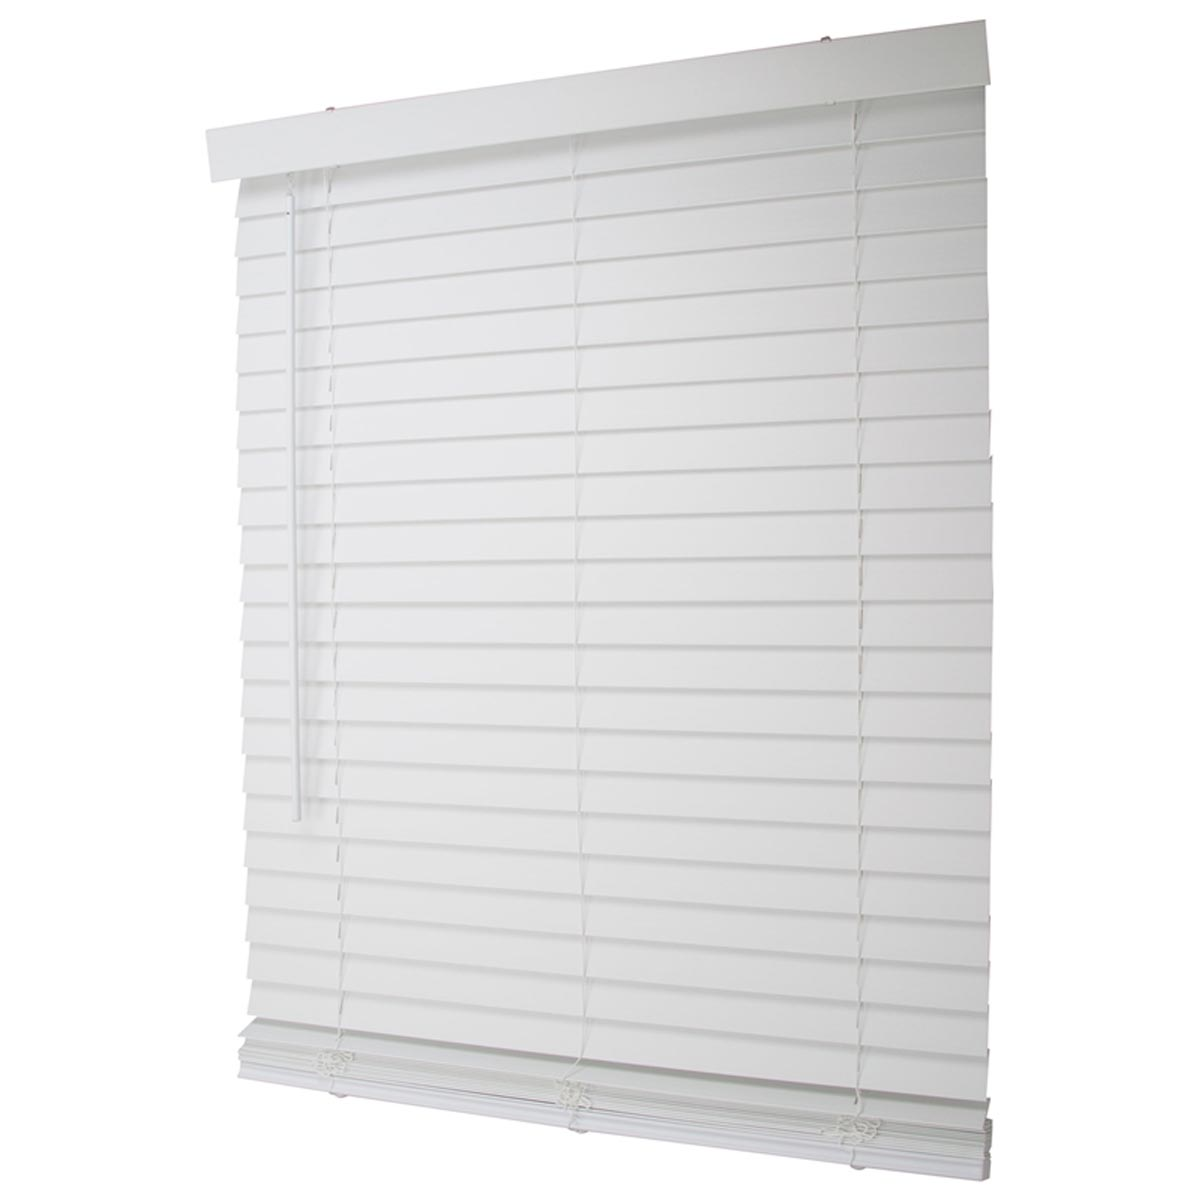 Simple Spaces Cordless Faux Wood Mini Blind, 64 in. (L) x 32 in. (W), White